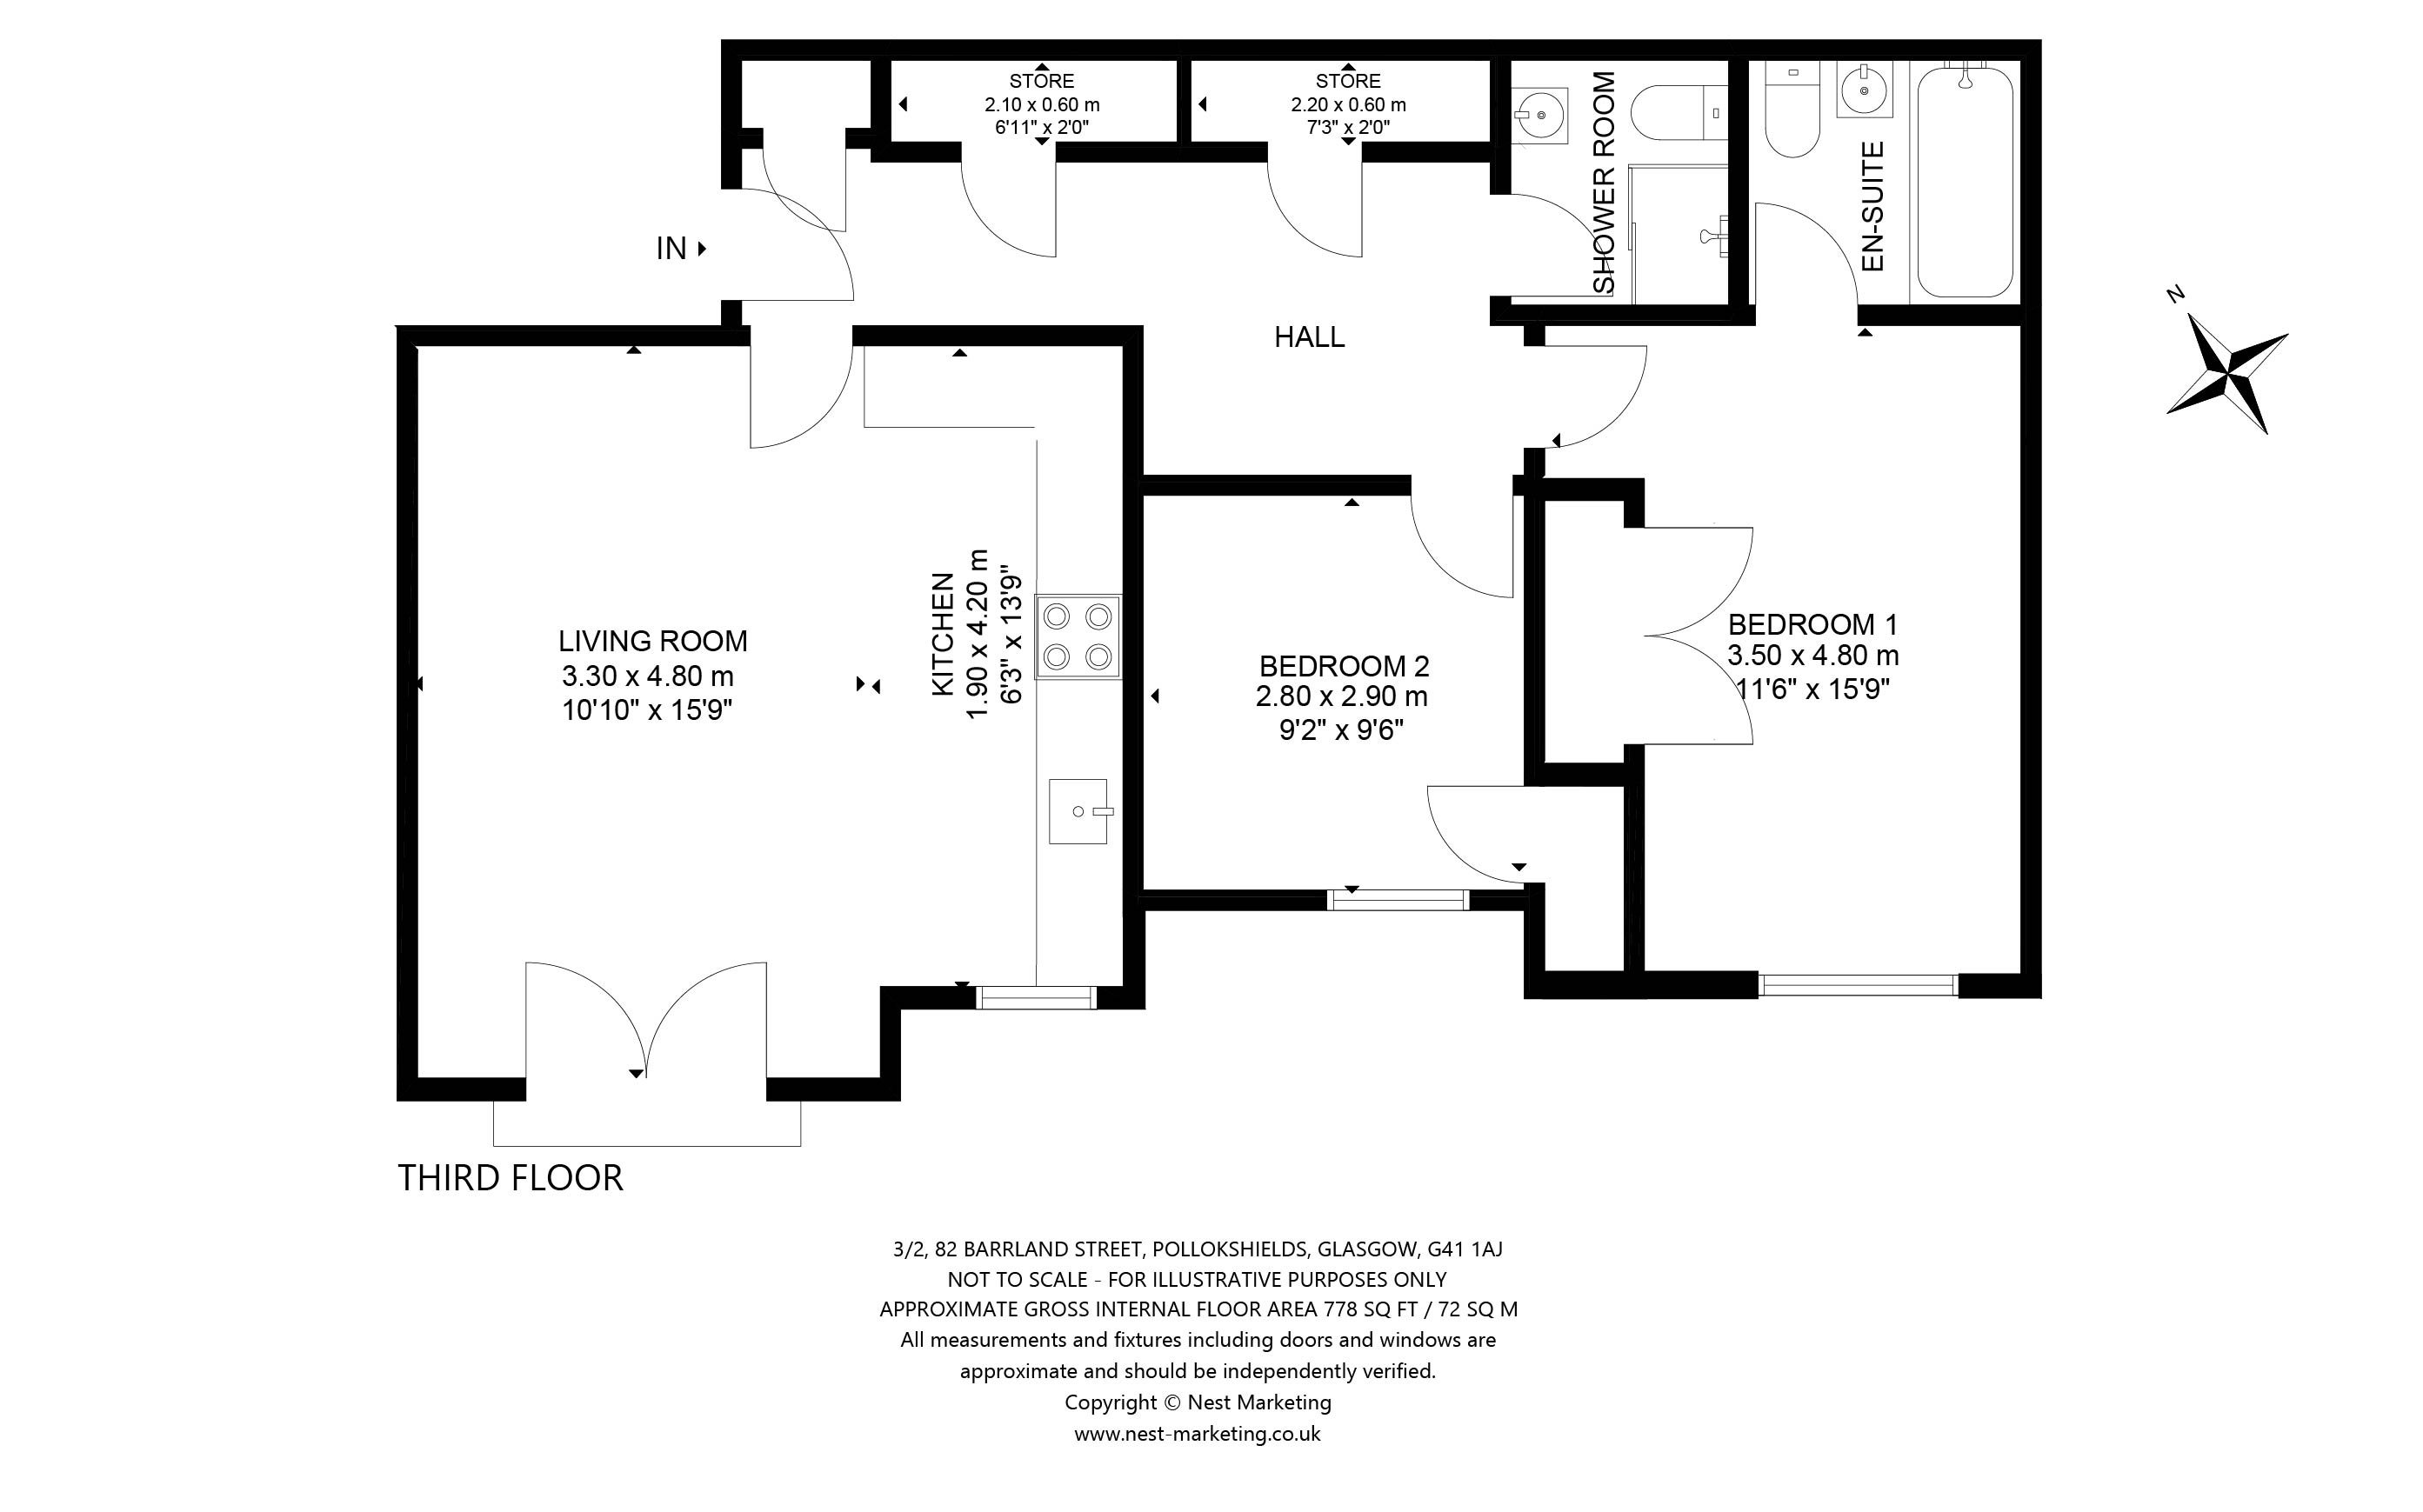 Floorplans for Barrland Street, Pollokshields, Glasgow, G41